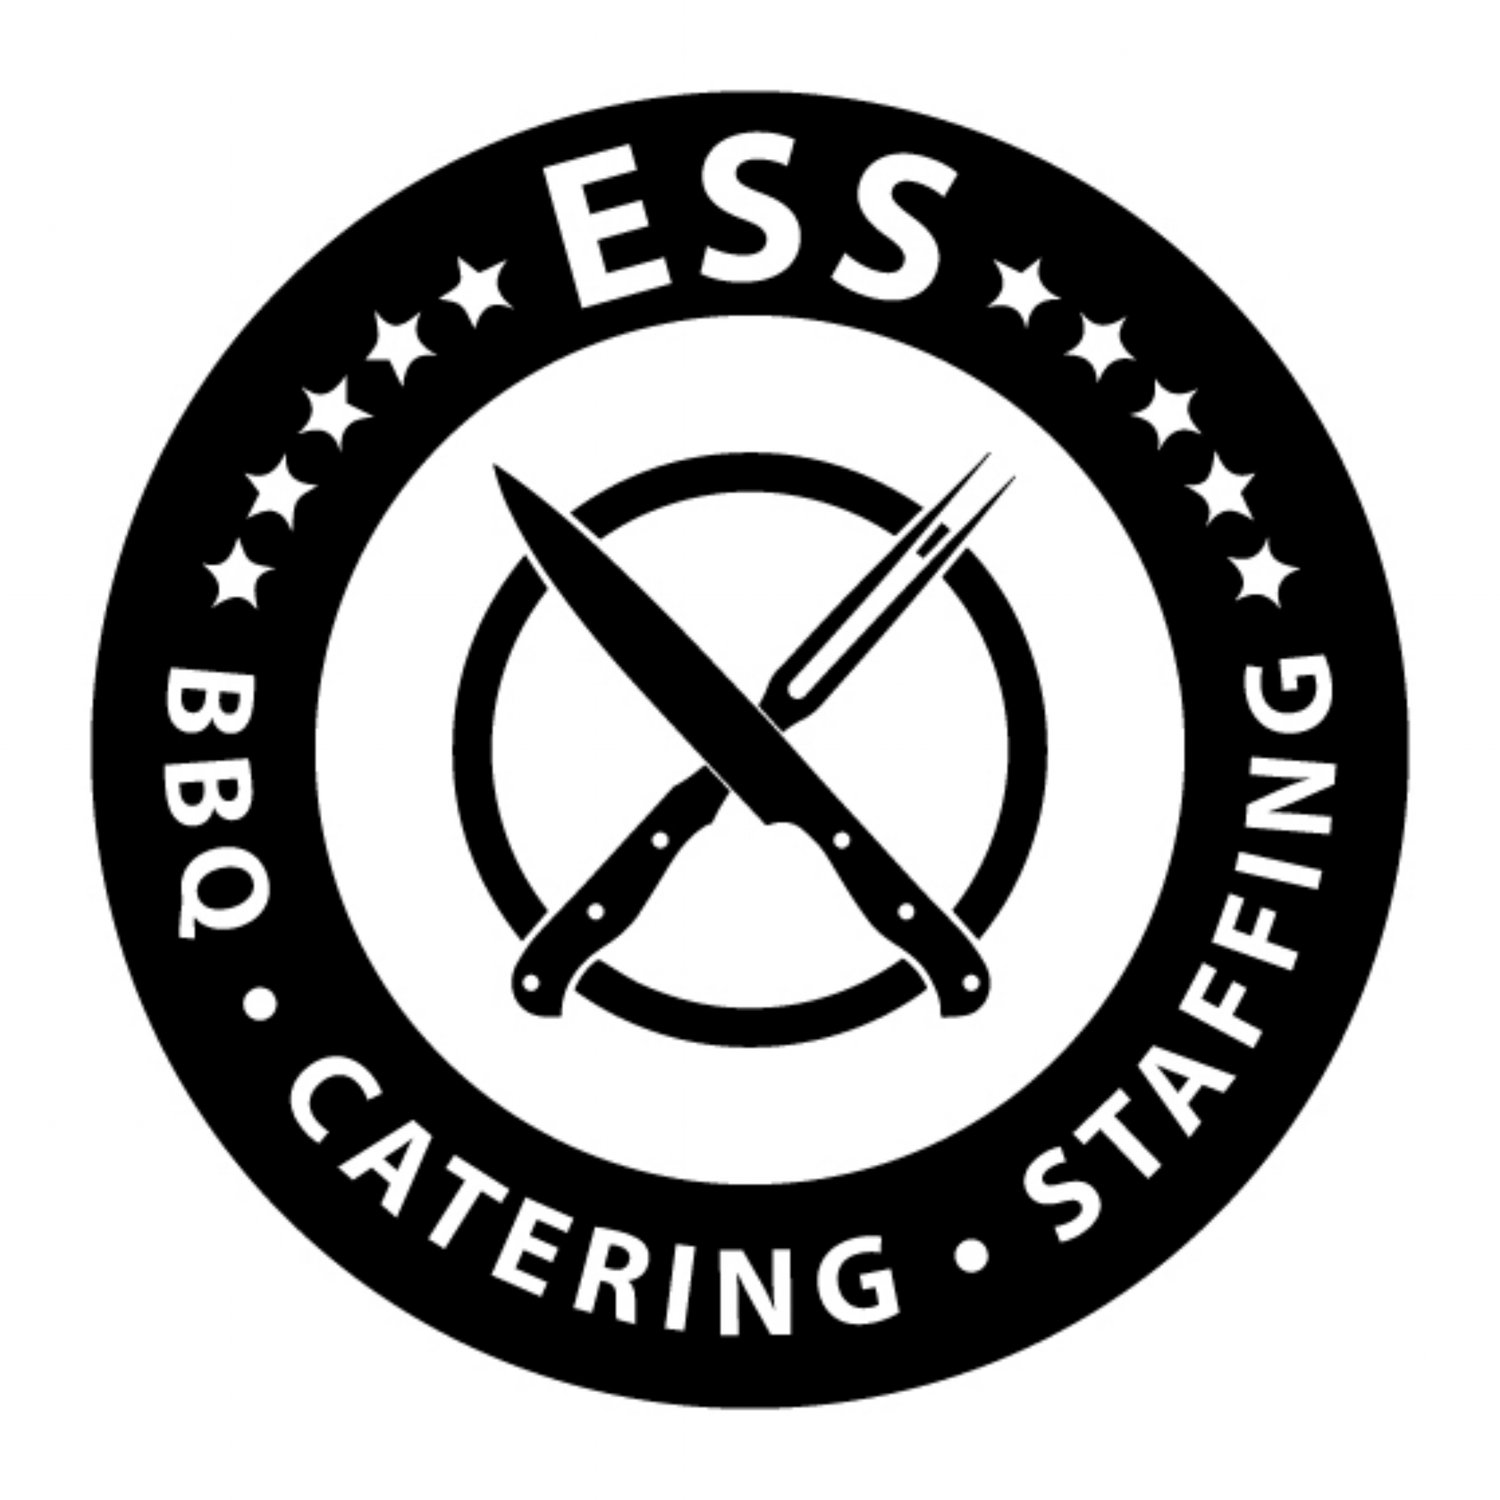 ESS • BBQ • Catering • Staffing